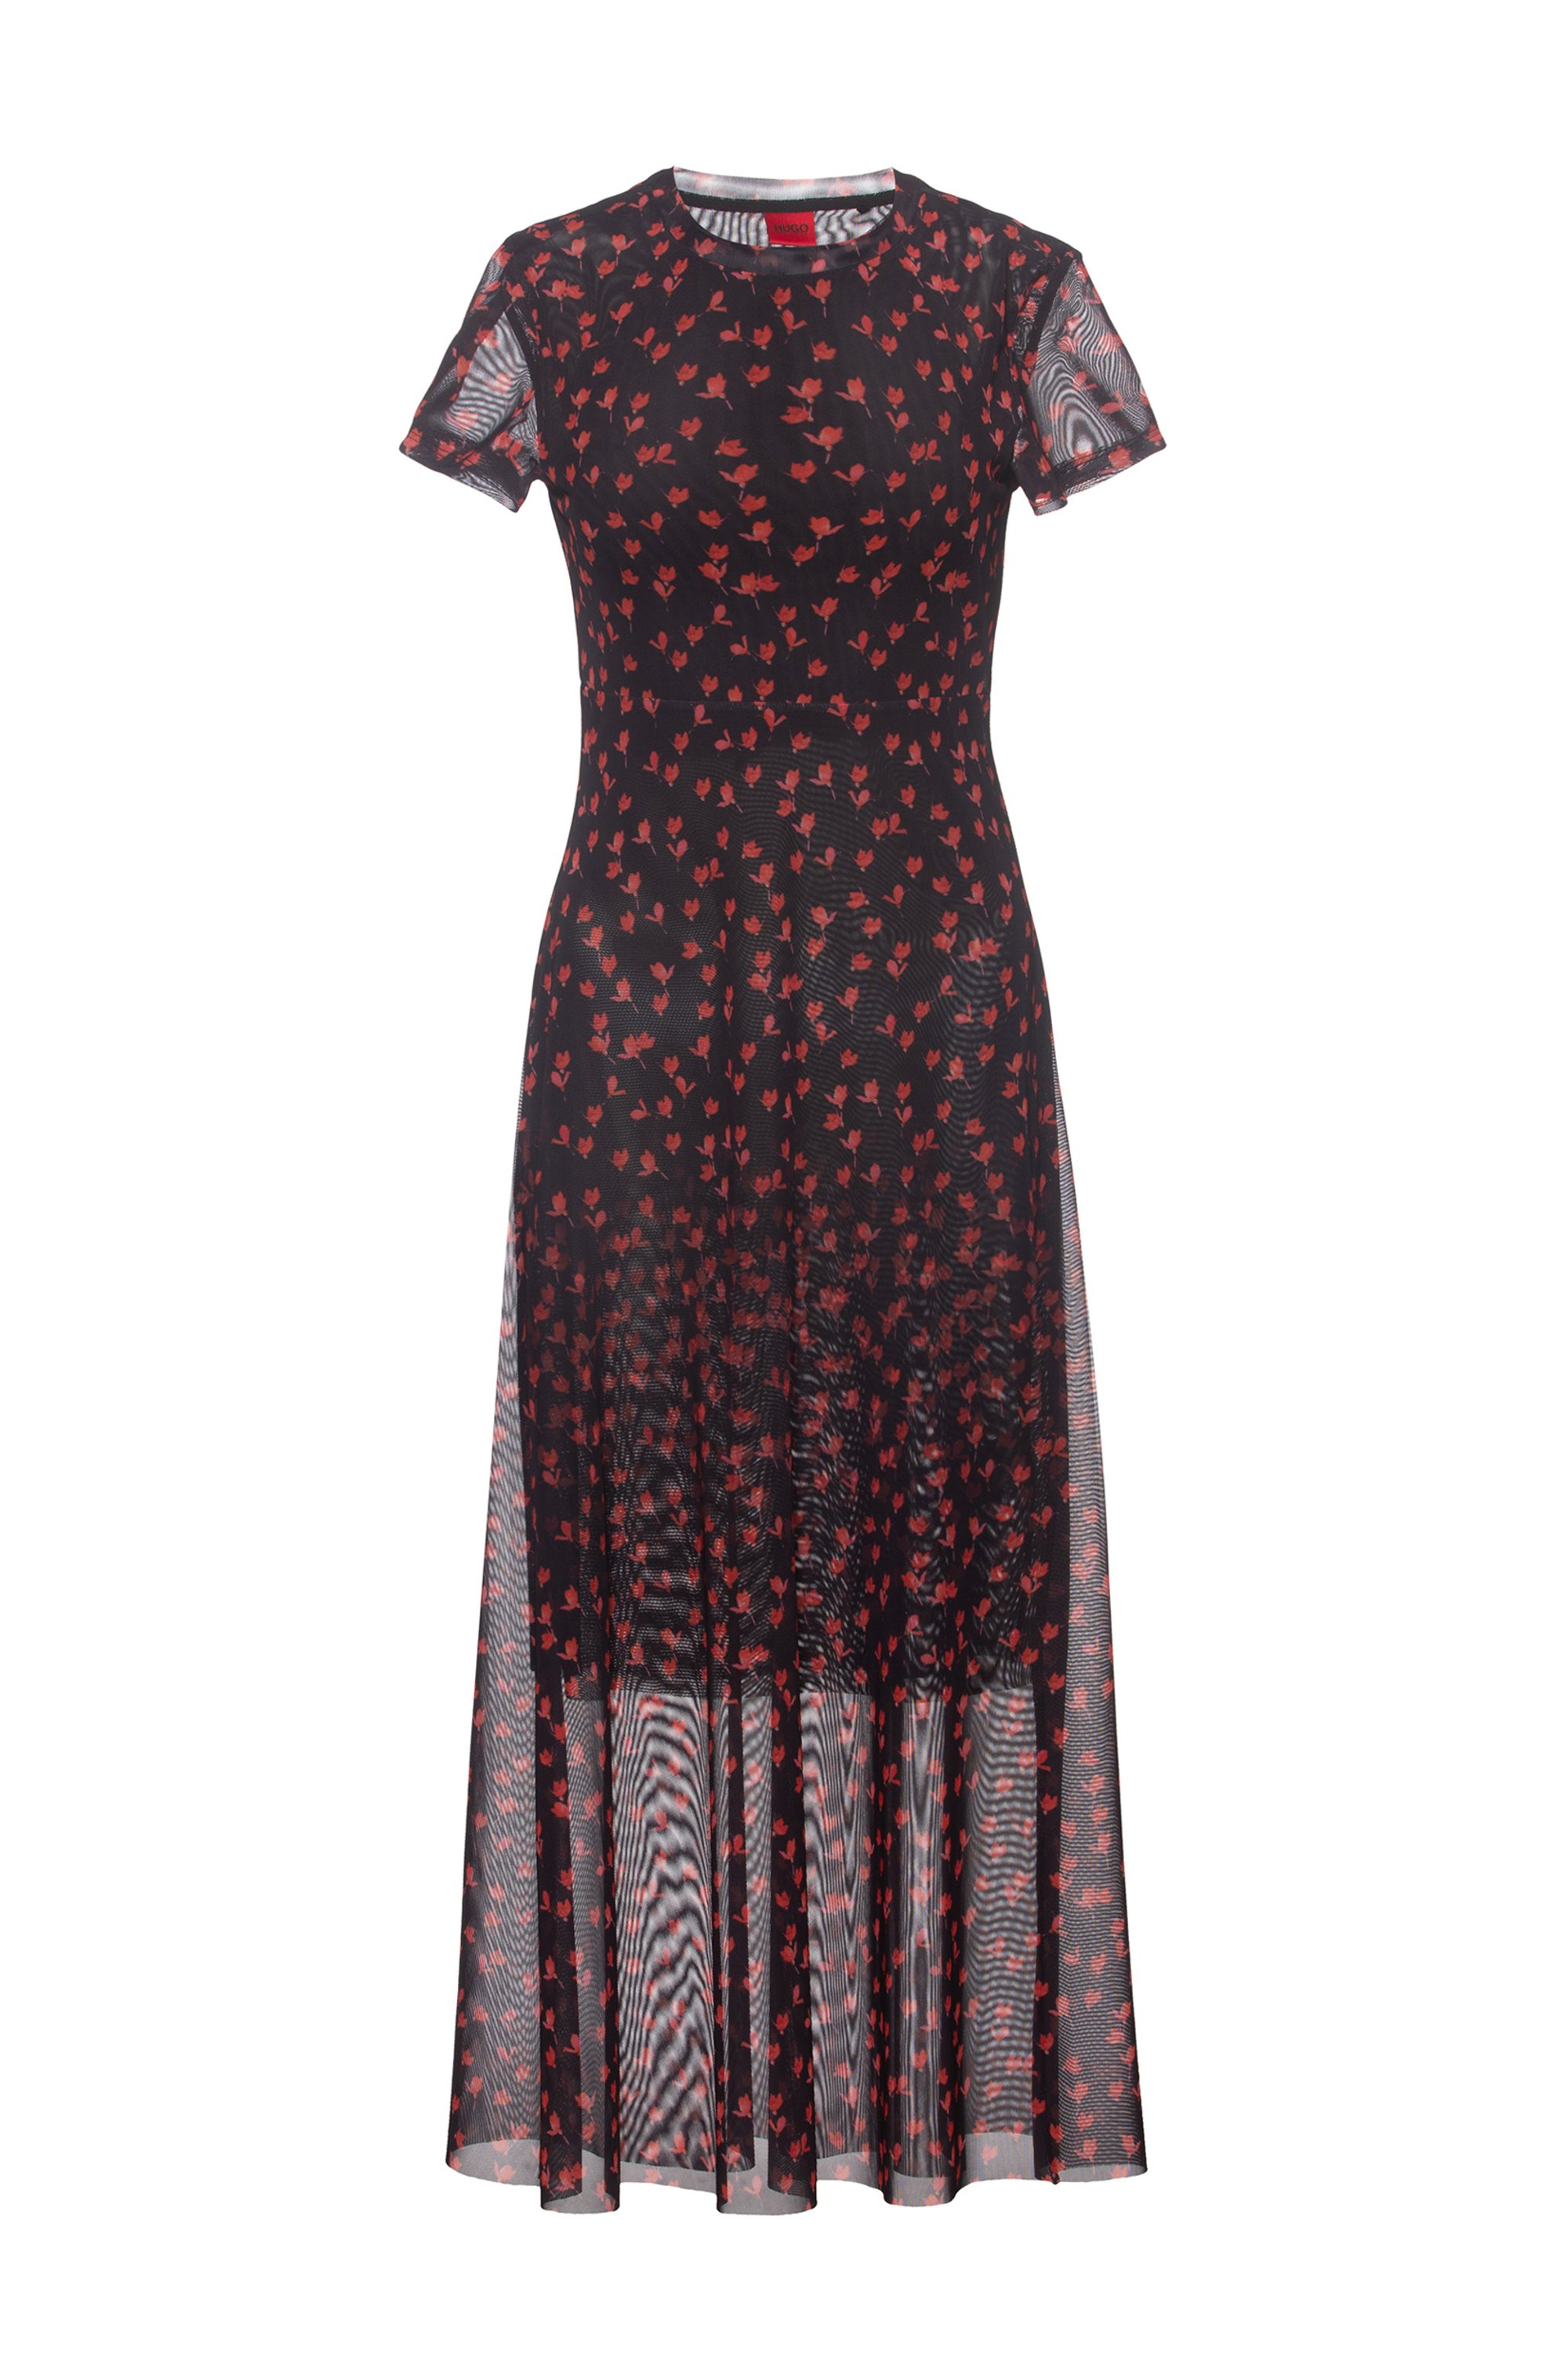 Midi-length mesh dress with all-over graphic print, Patterned